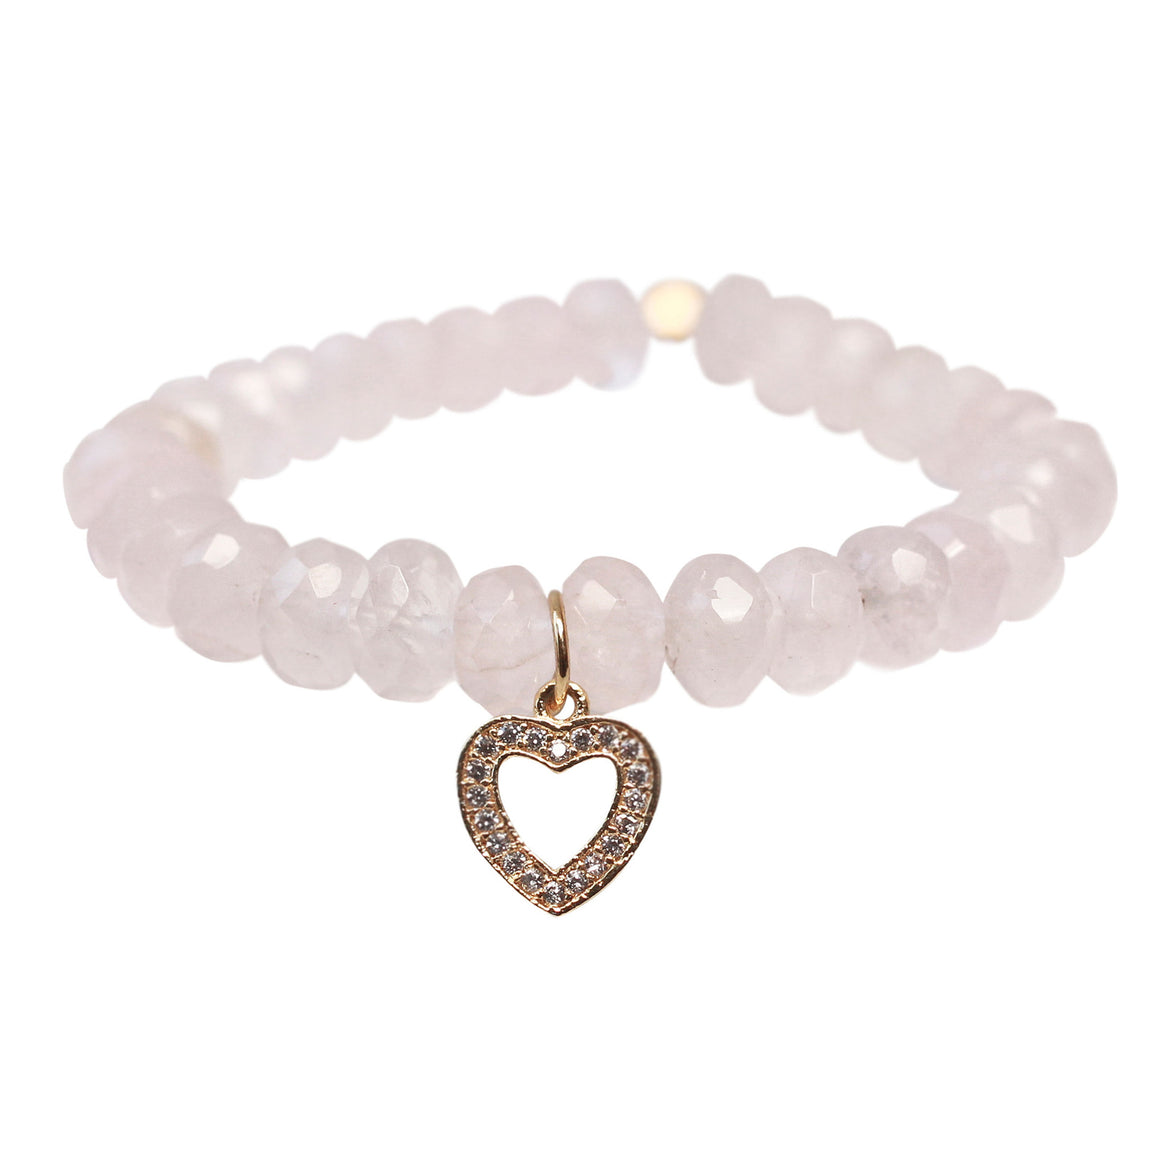 The Always in my Heart Charm in Gold